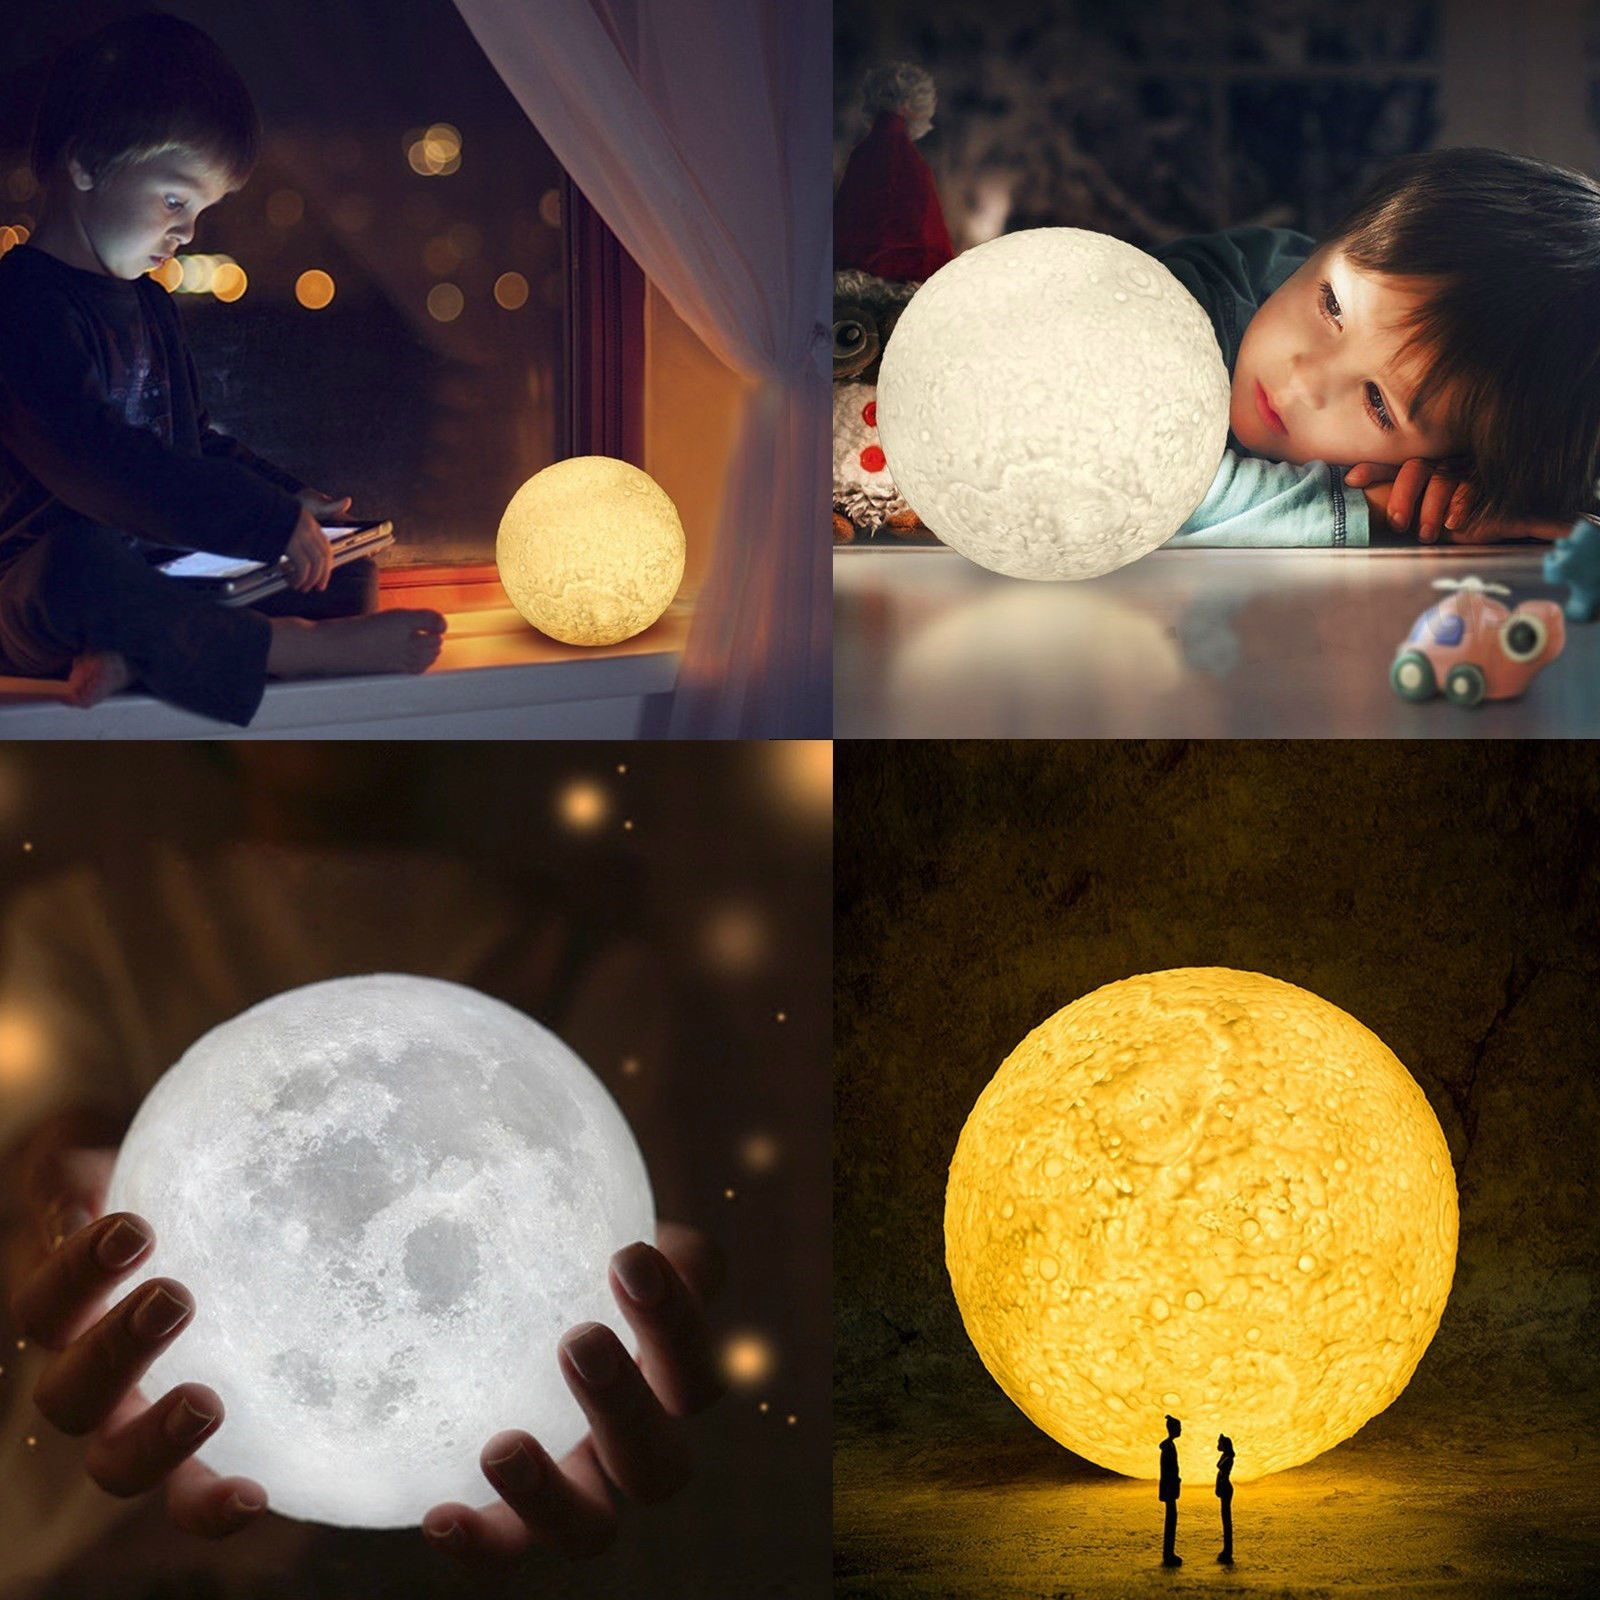 Luna 3d Moon Night Light Lamp Free Worldwide Shipping Limited Stock Remaining Only Sold At Cozydec Night Light Lamp Night Light Decorative Night Lights